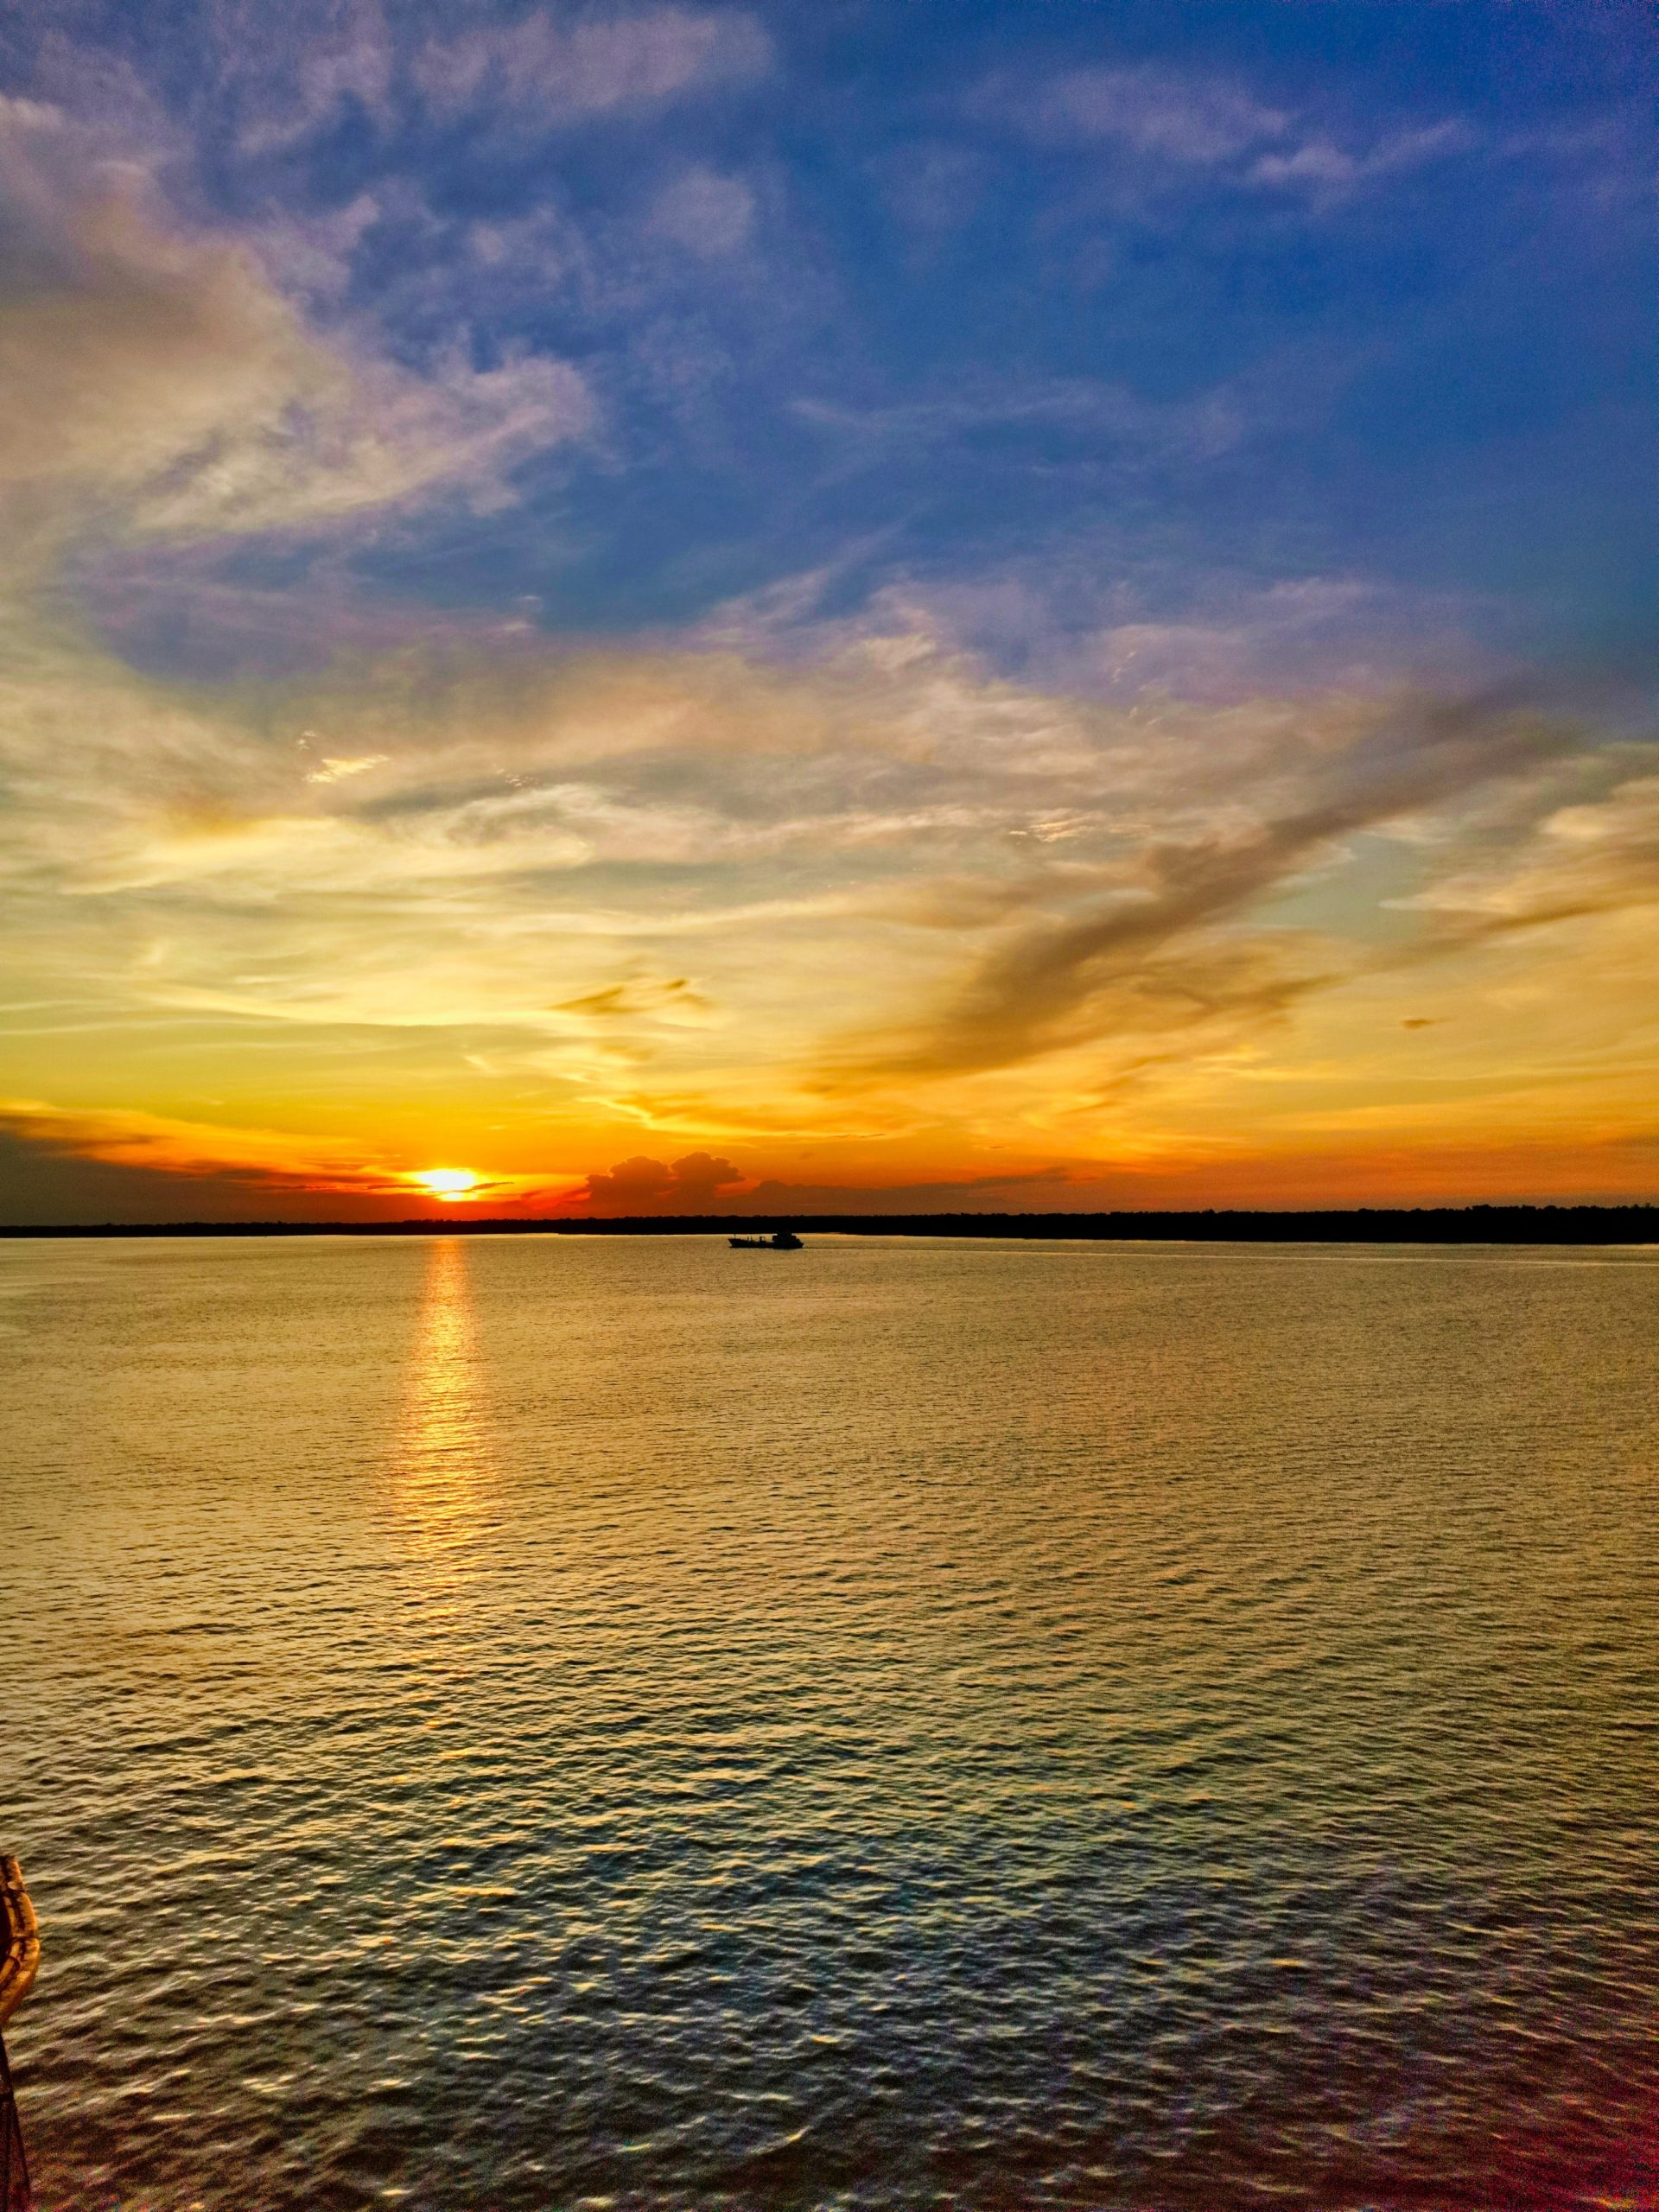 Sunset view in Malacca Beach, Malaysia worth visiting from SIngapore